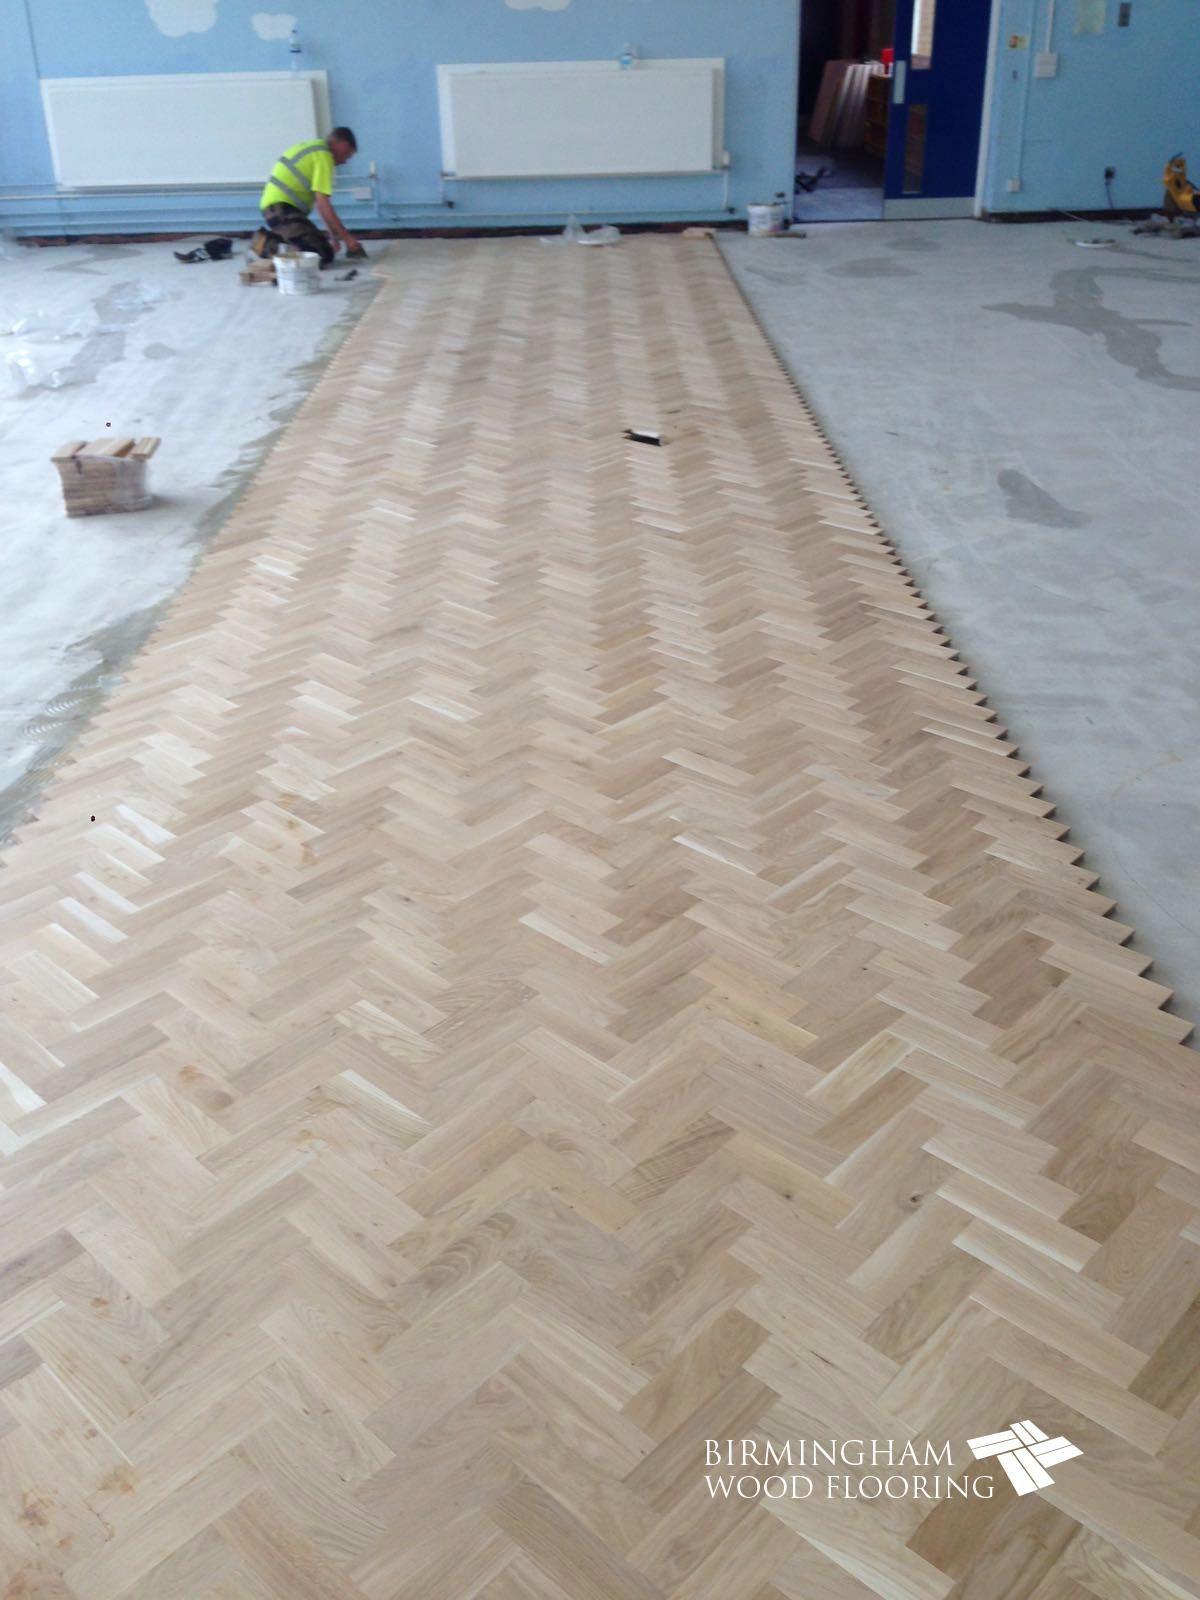 Chivenor-parquet-header-line-with-field